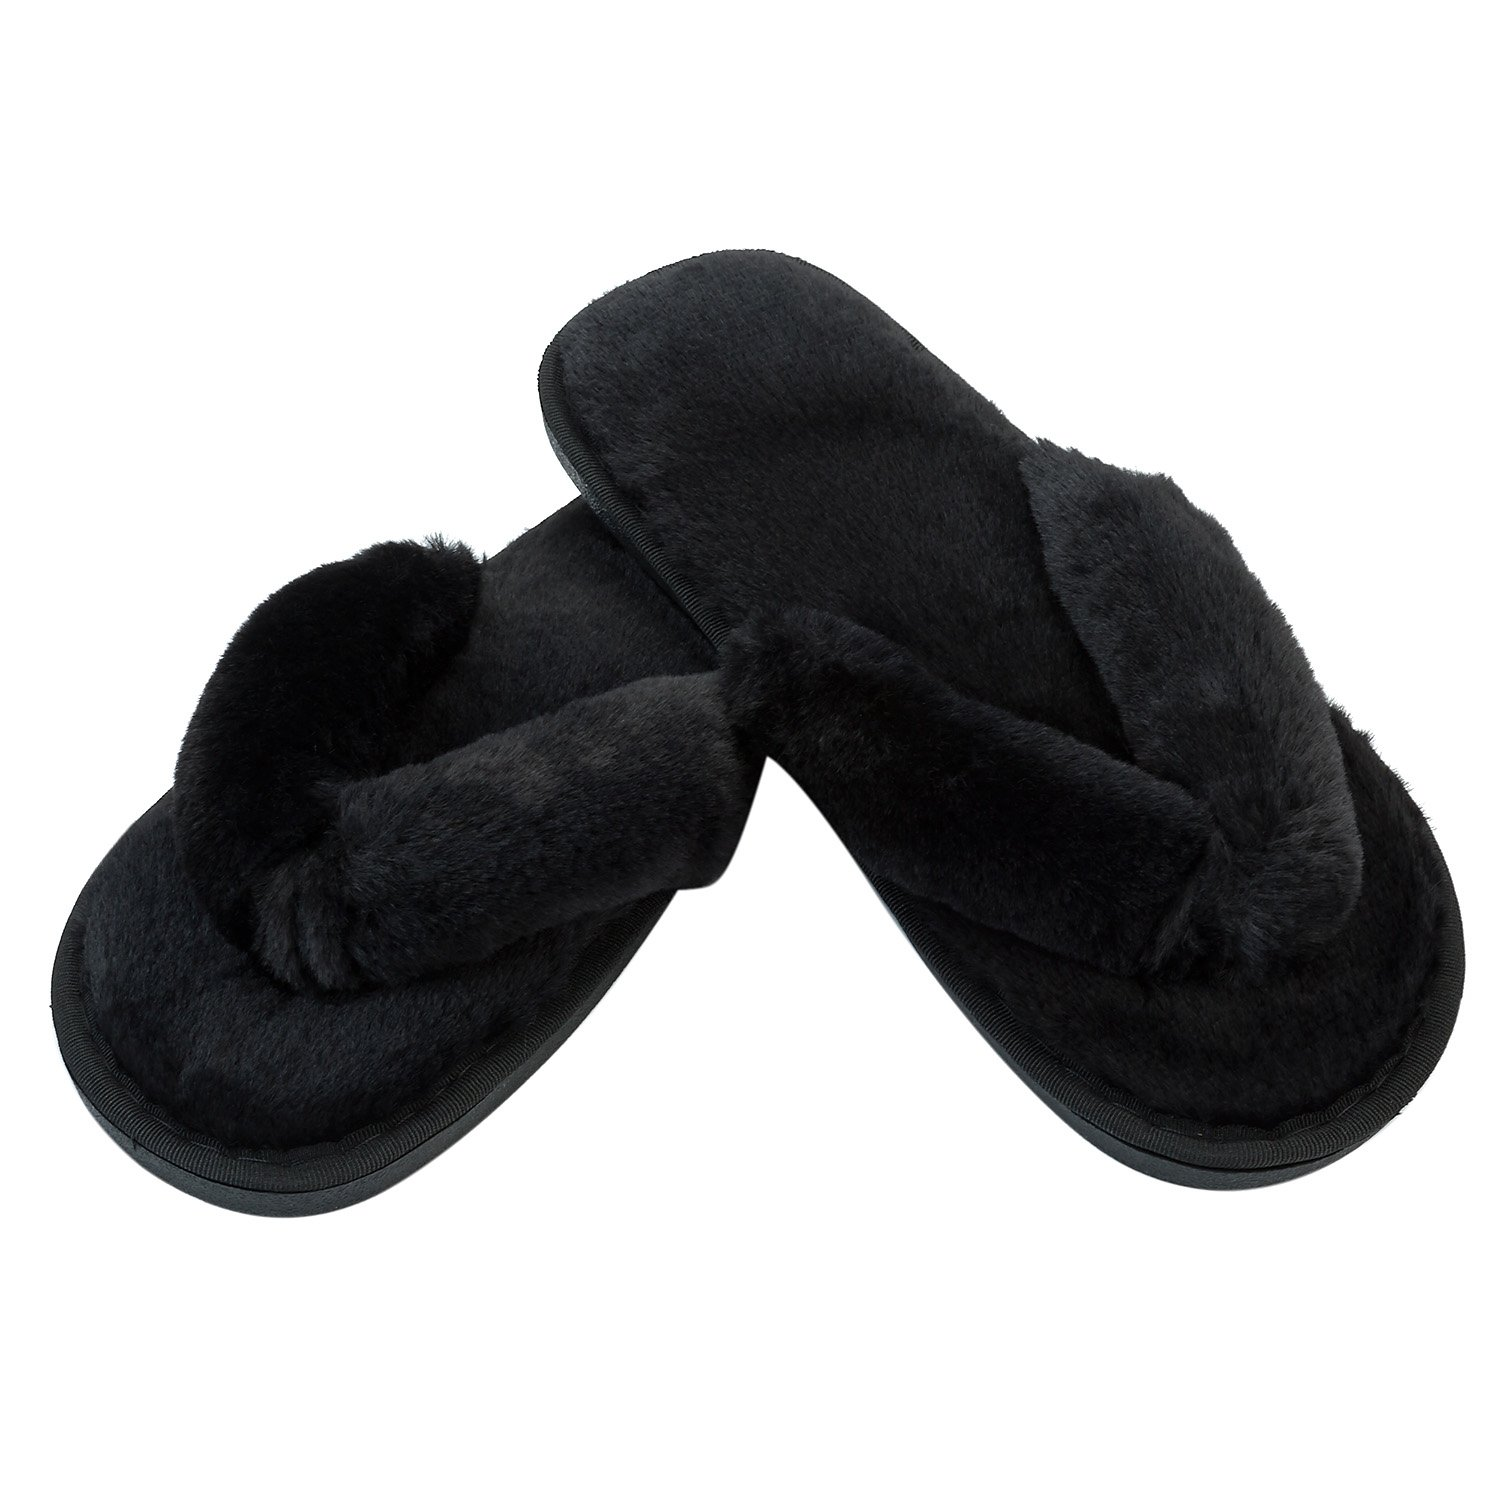 JOINFREE Women's Furry Home Slippers Soft Plush Spa Indoor Flip-Flop Shoes Black 9.5-10.5 M US by JOINFREE